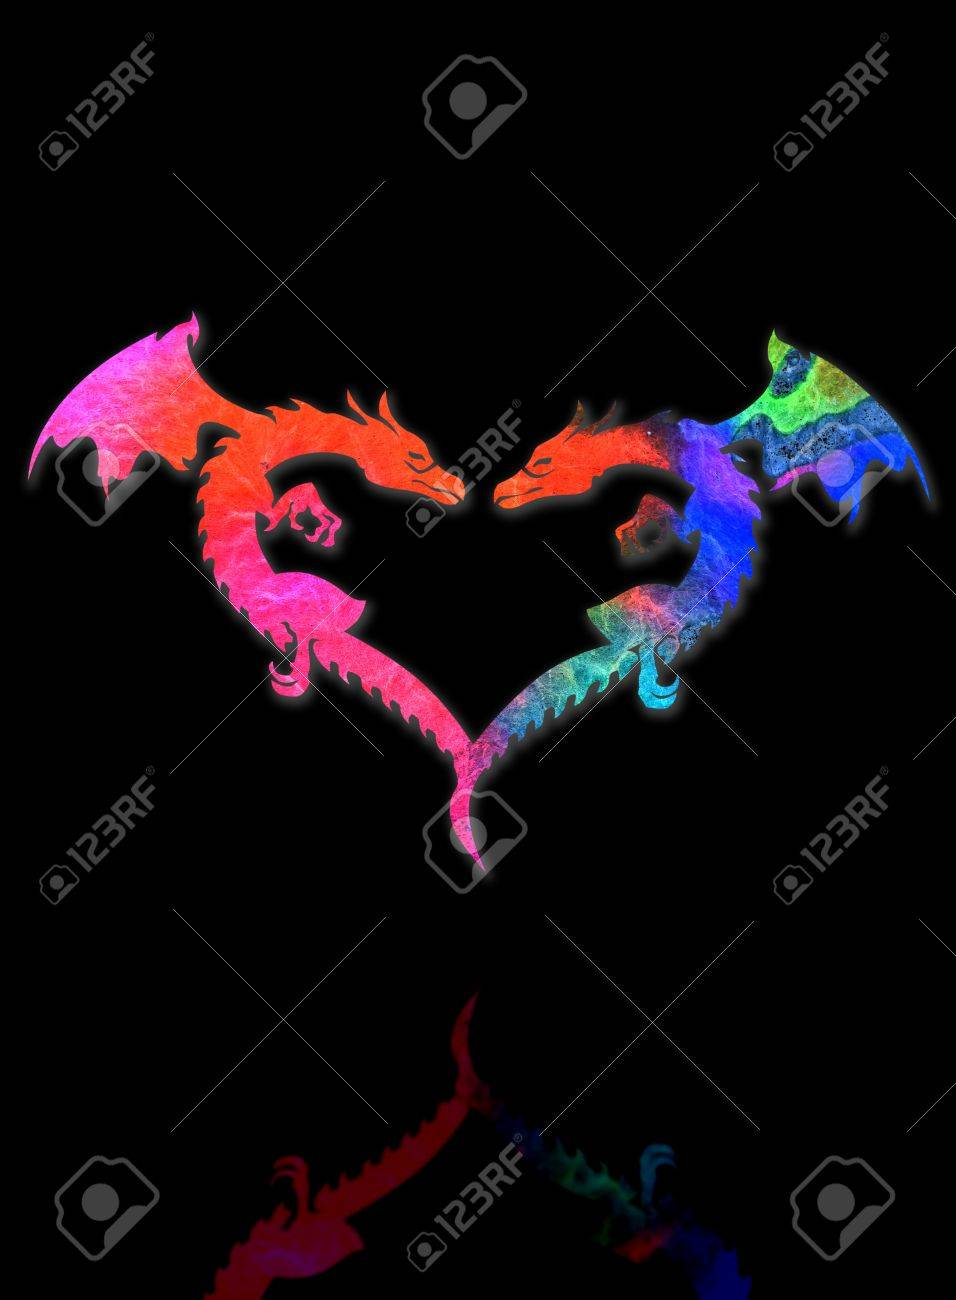 Dragon Heart and shadow isolated on black background Stock Photo - 17907907